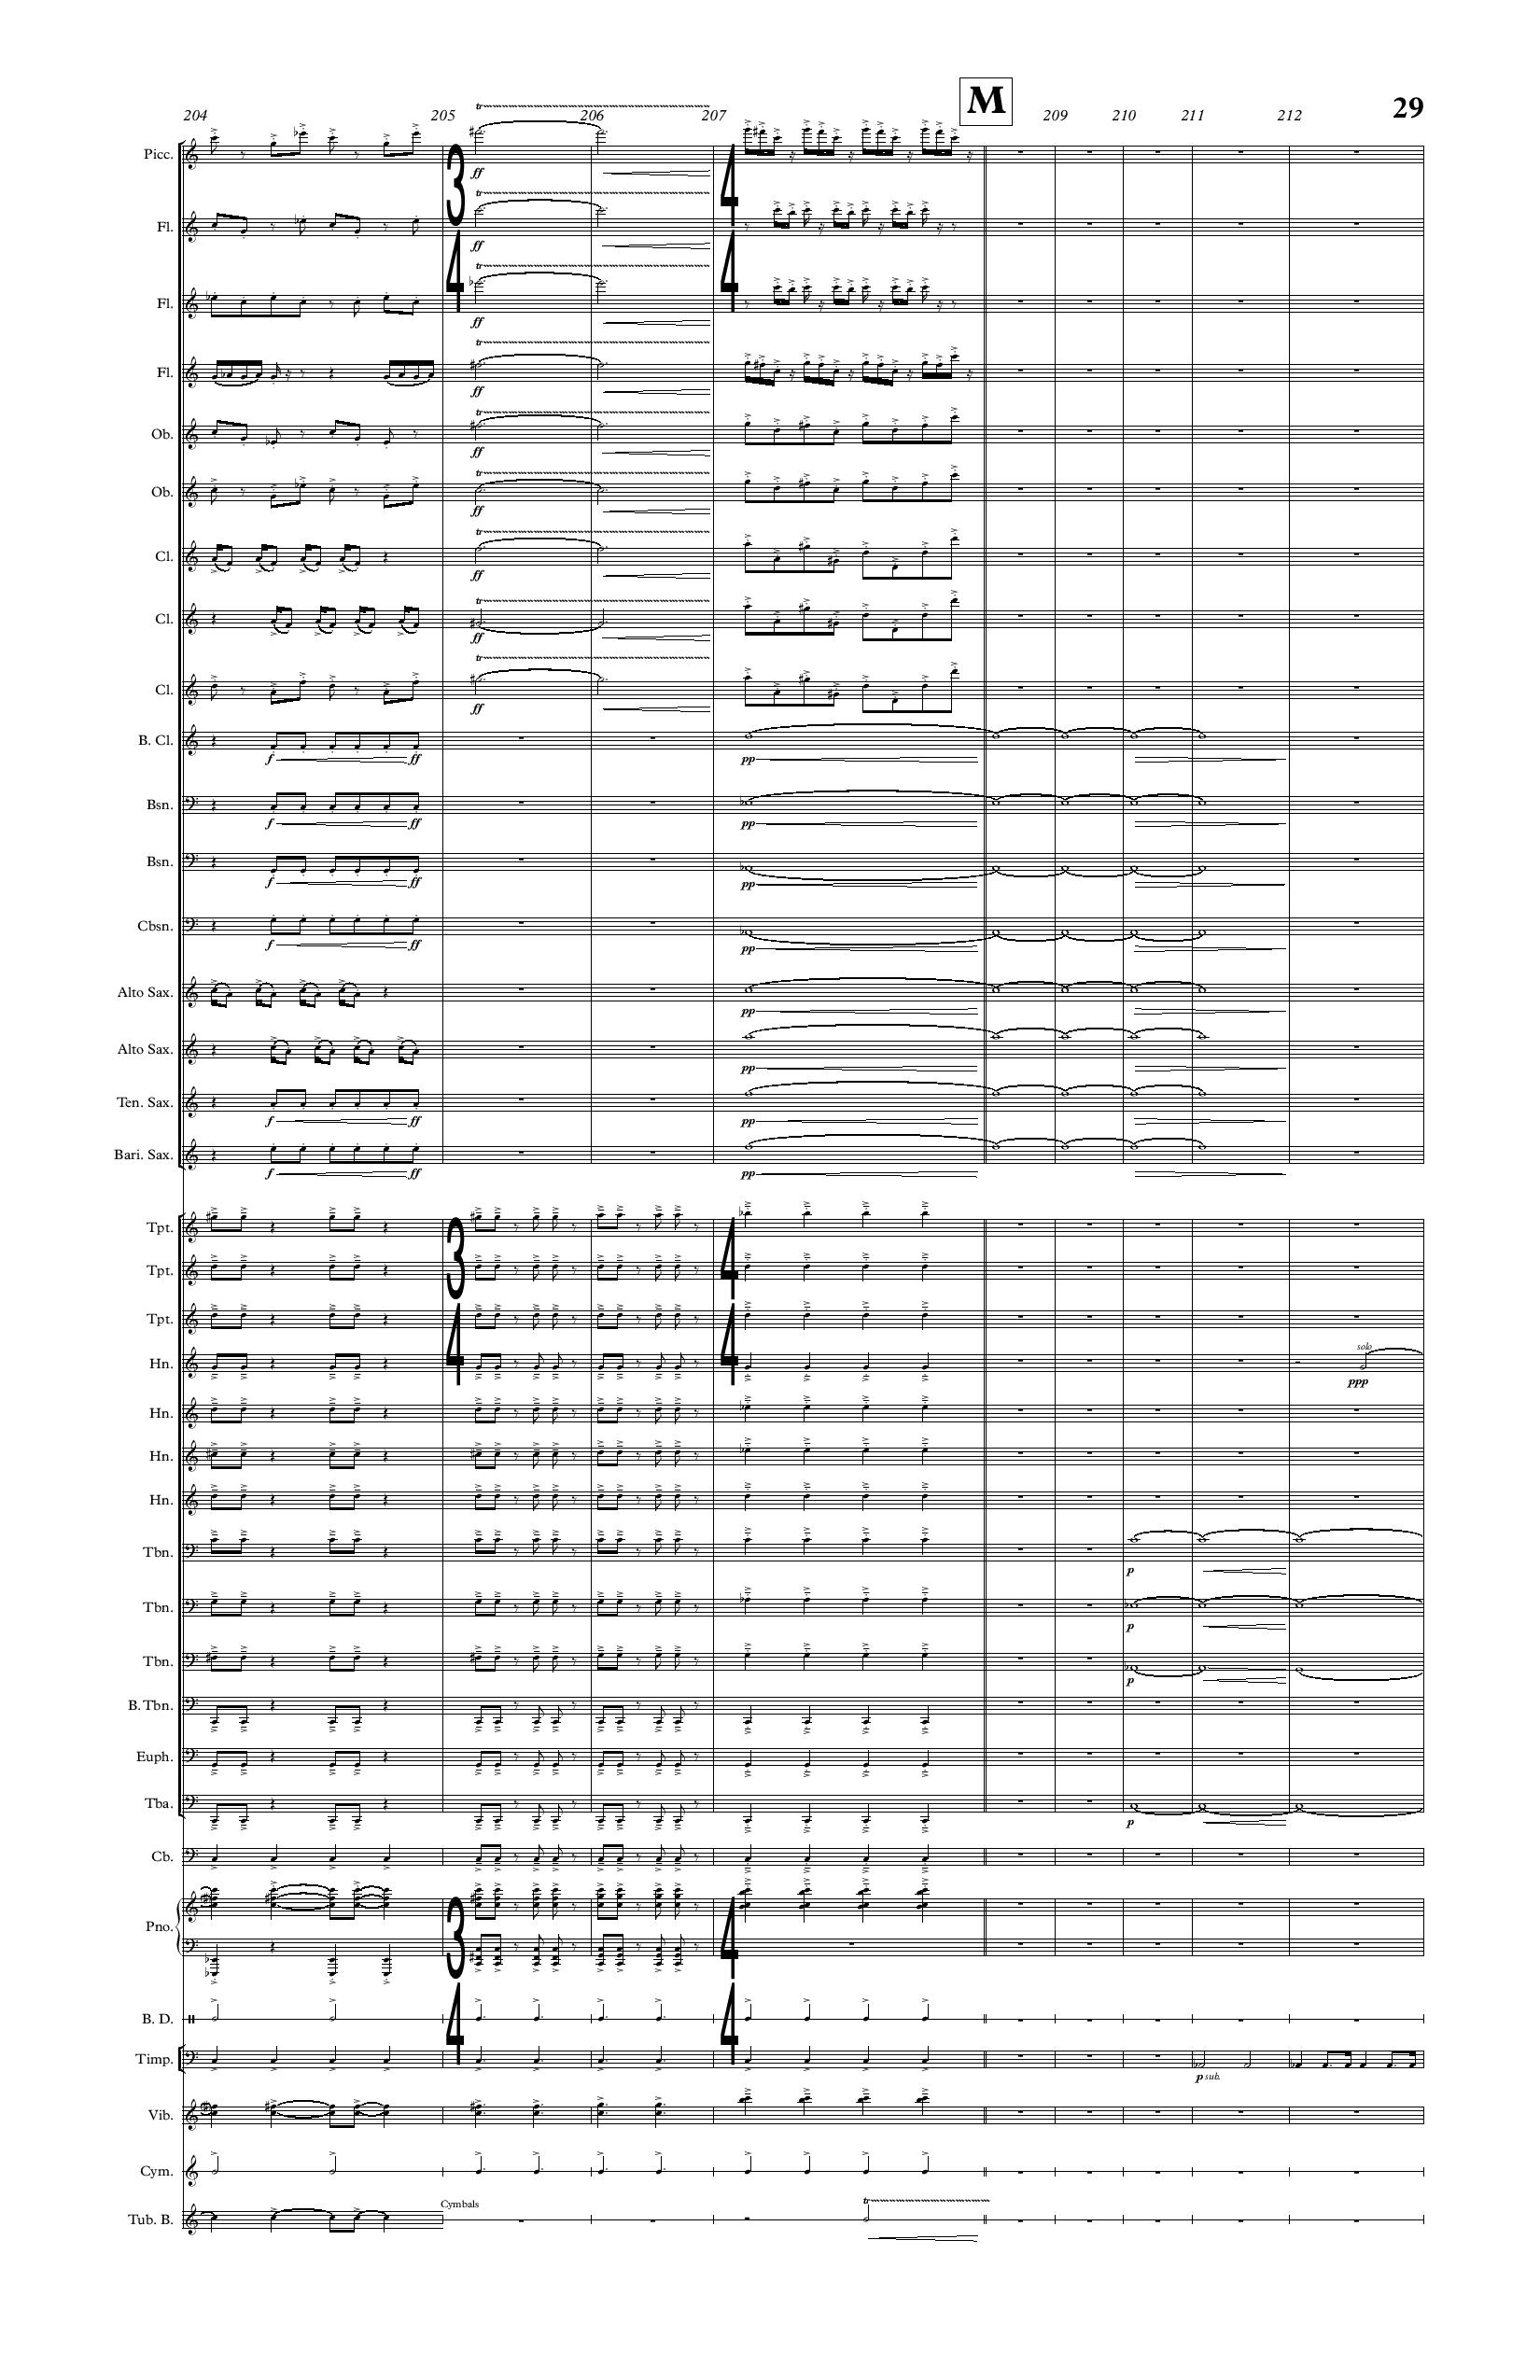 Rupture Full Transposed Score - Full Score (1)-page-029